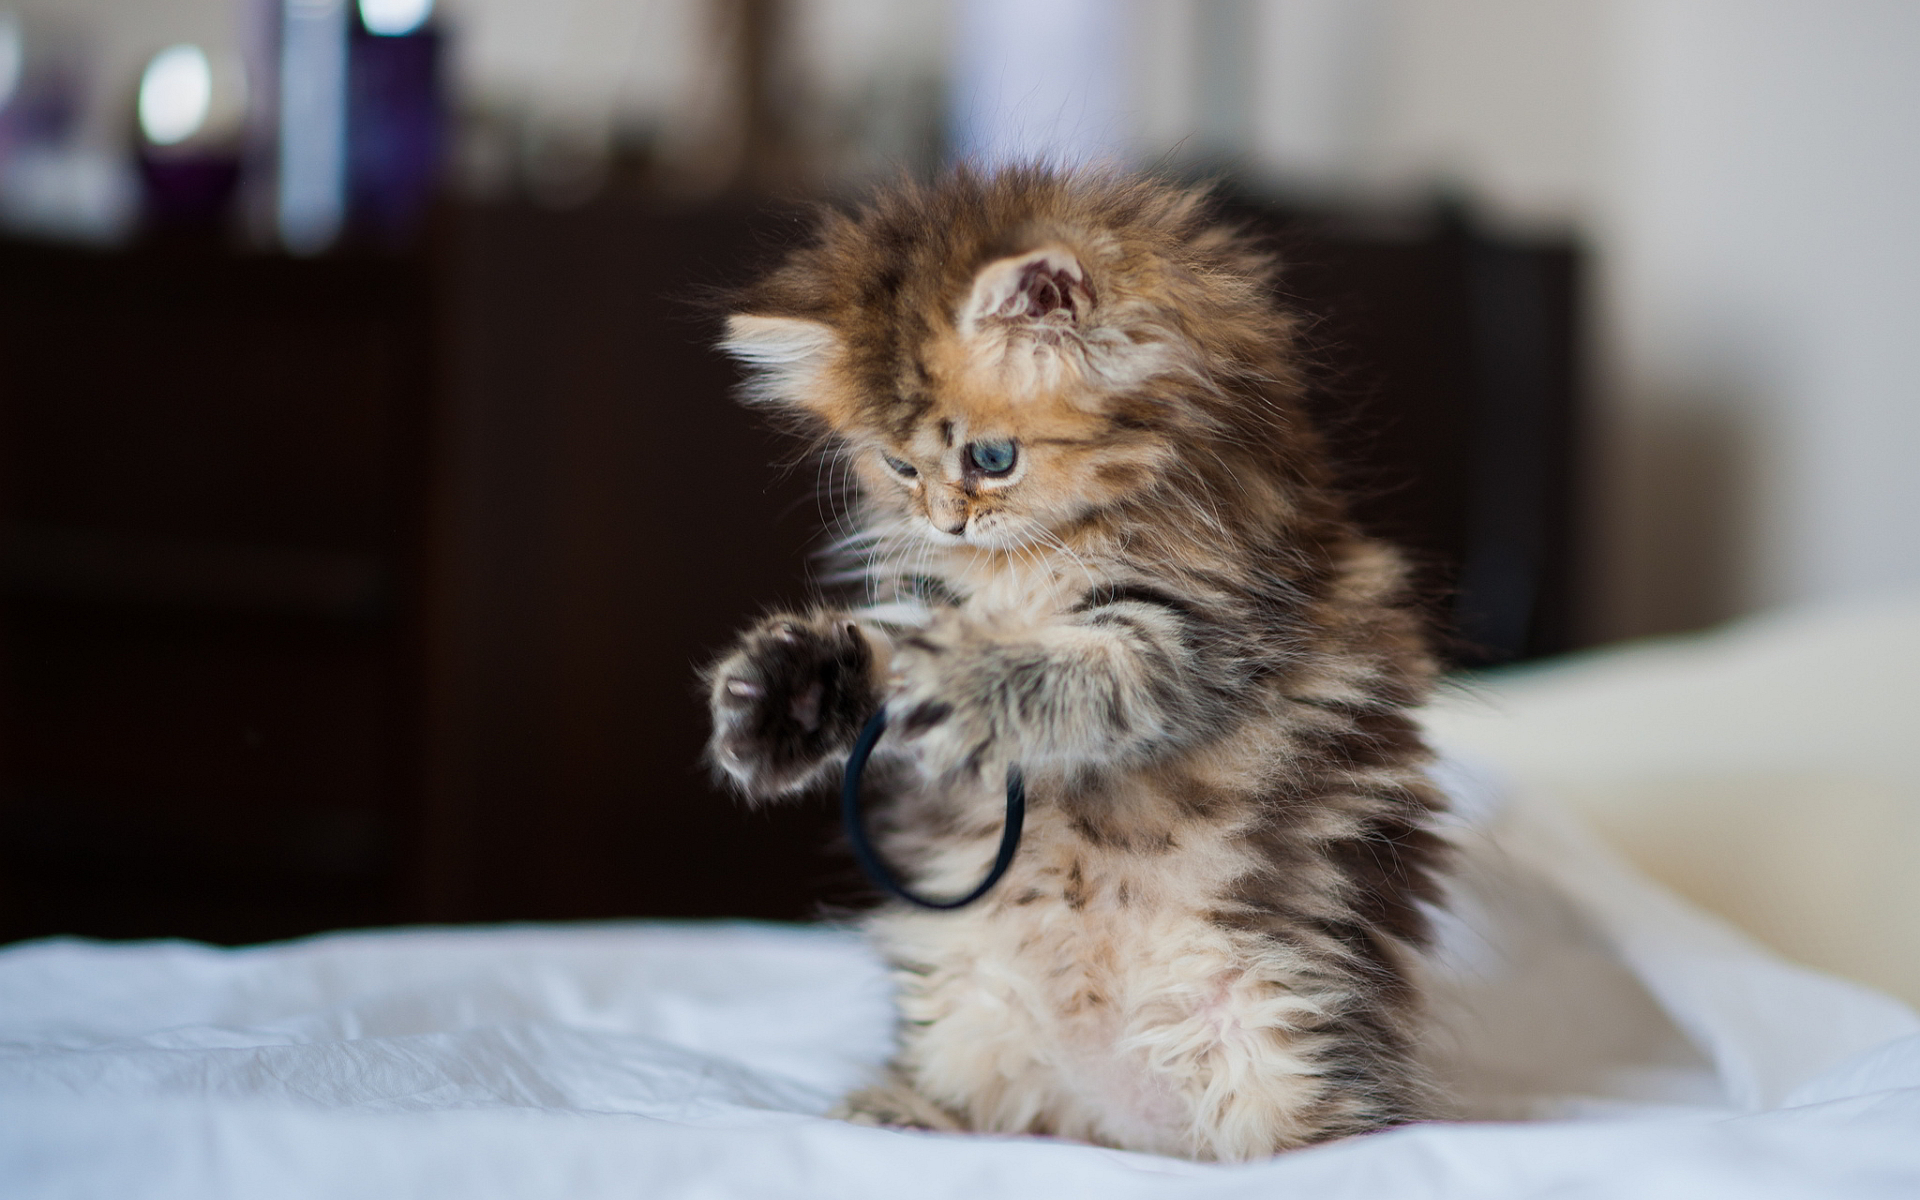 Cute kitty playing